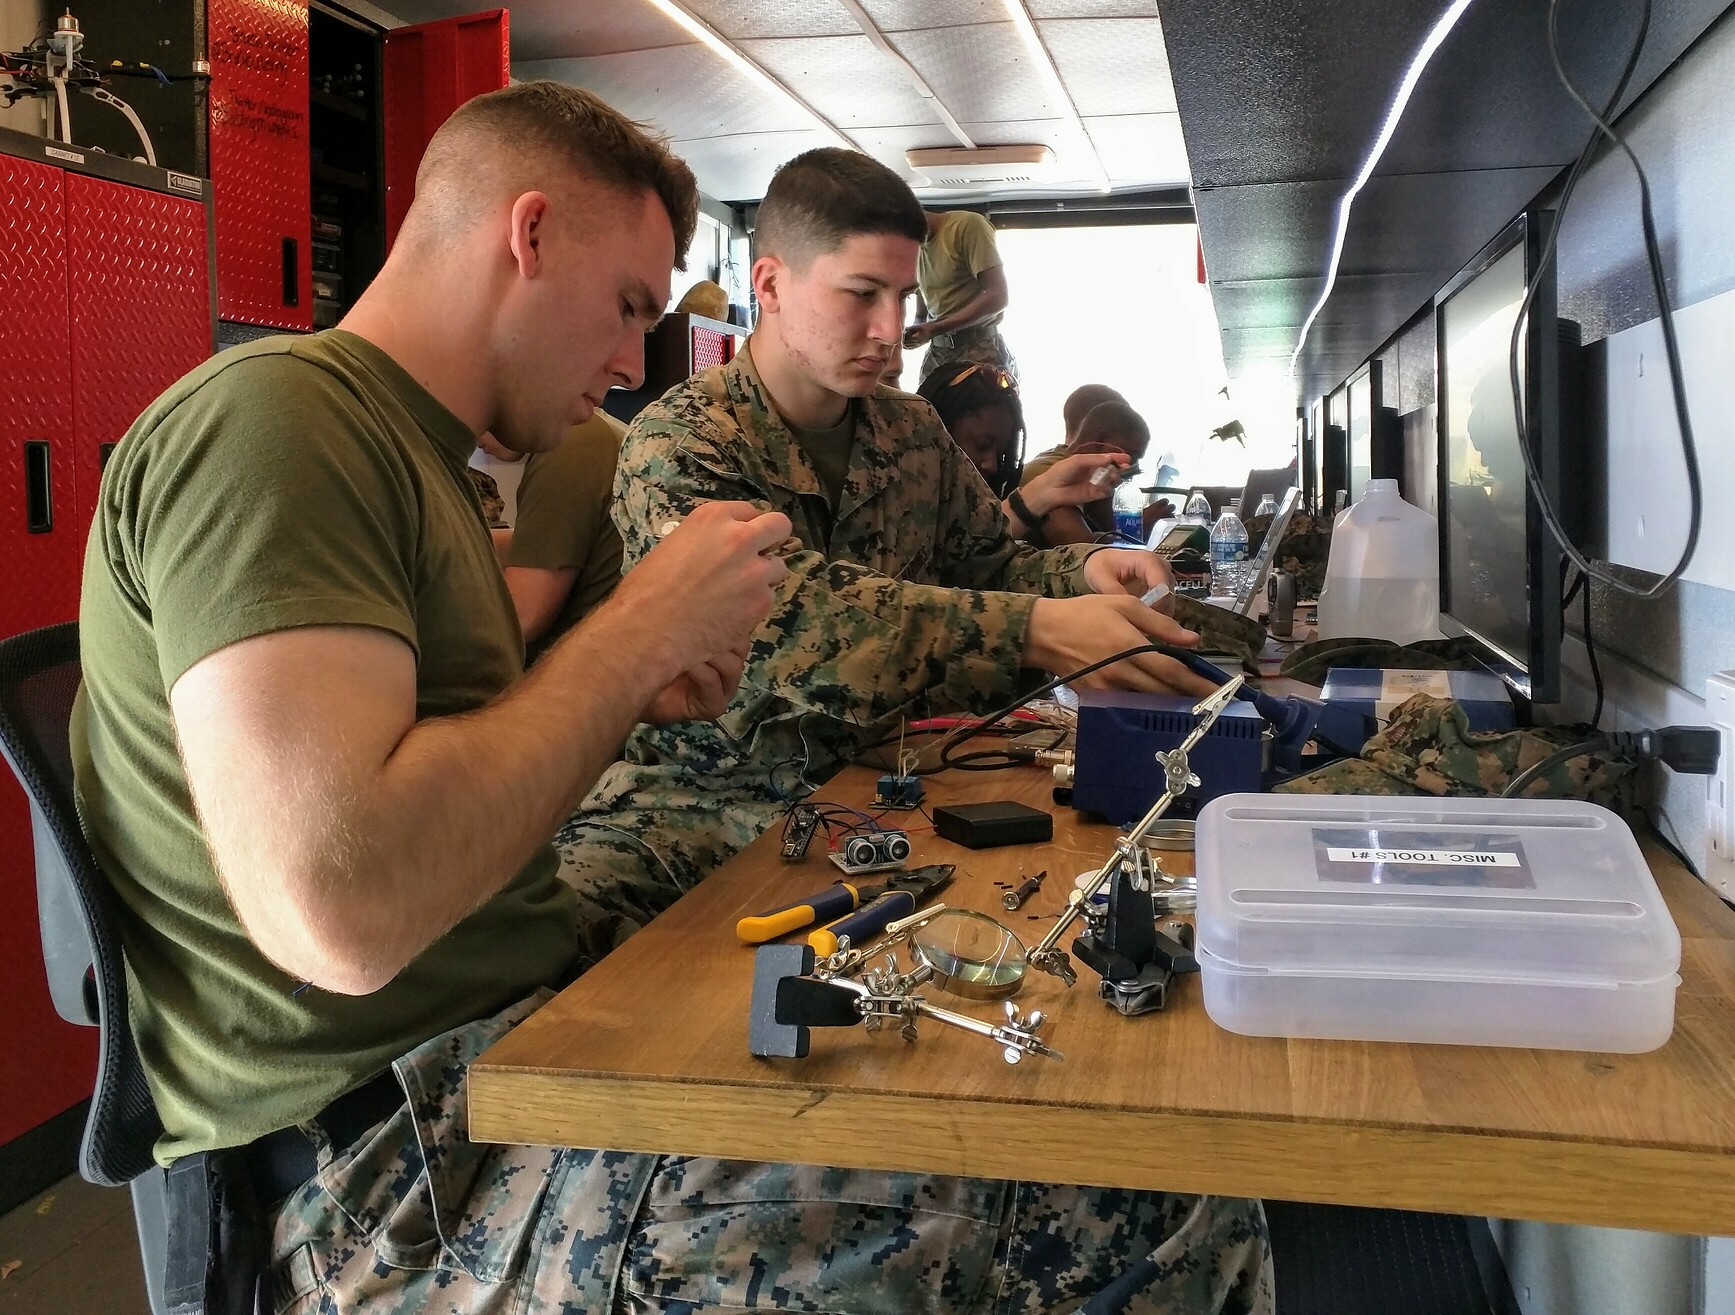 Figure 1. Marines soldering and programming Arduinos during Innovation Bootcamp in Building Momentum's mobile training lab.